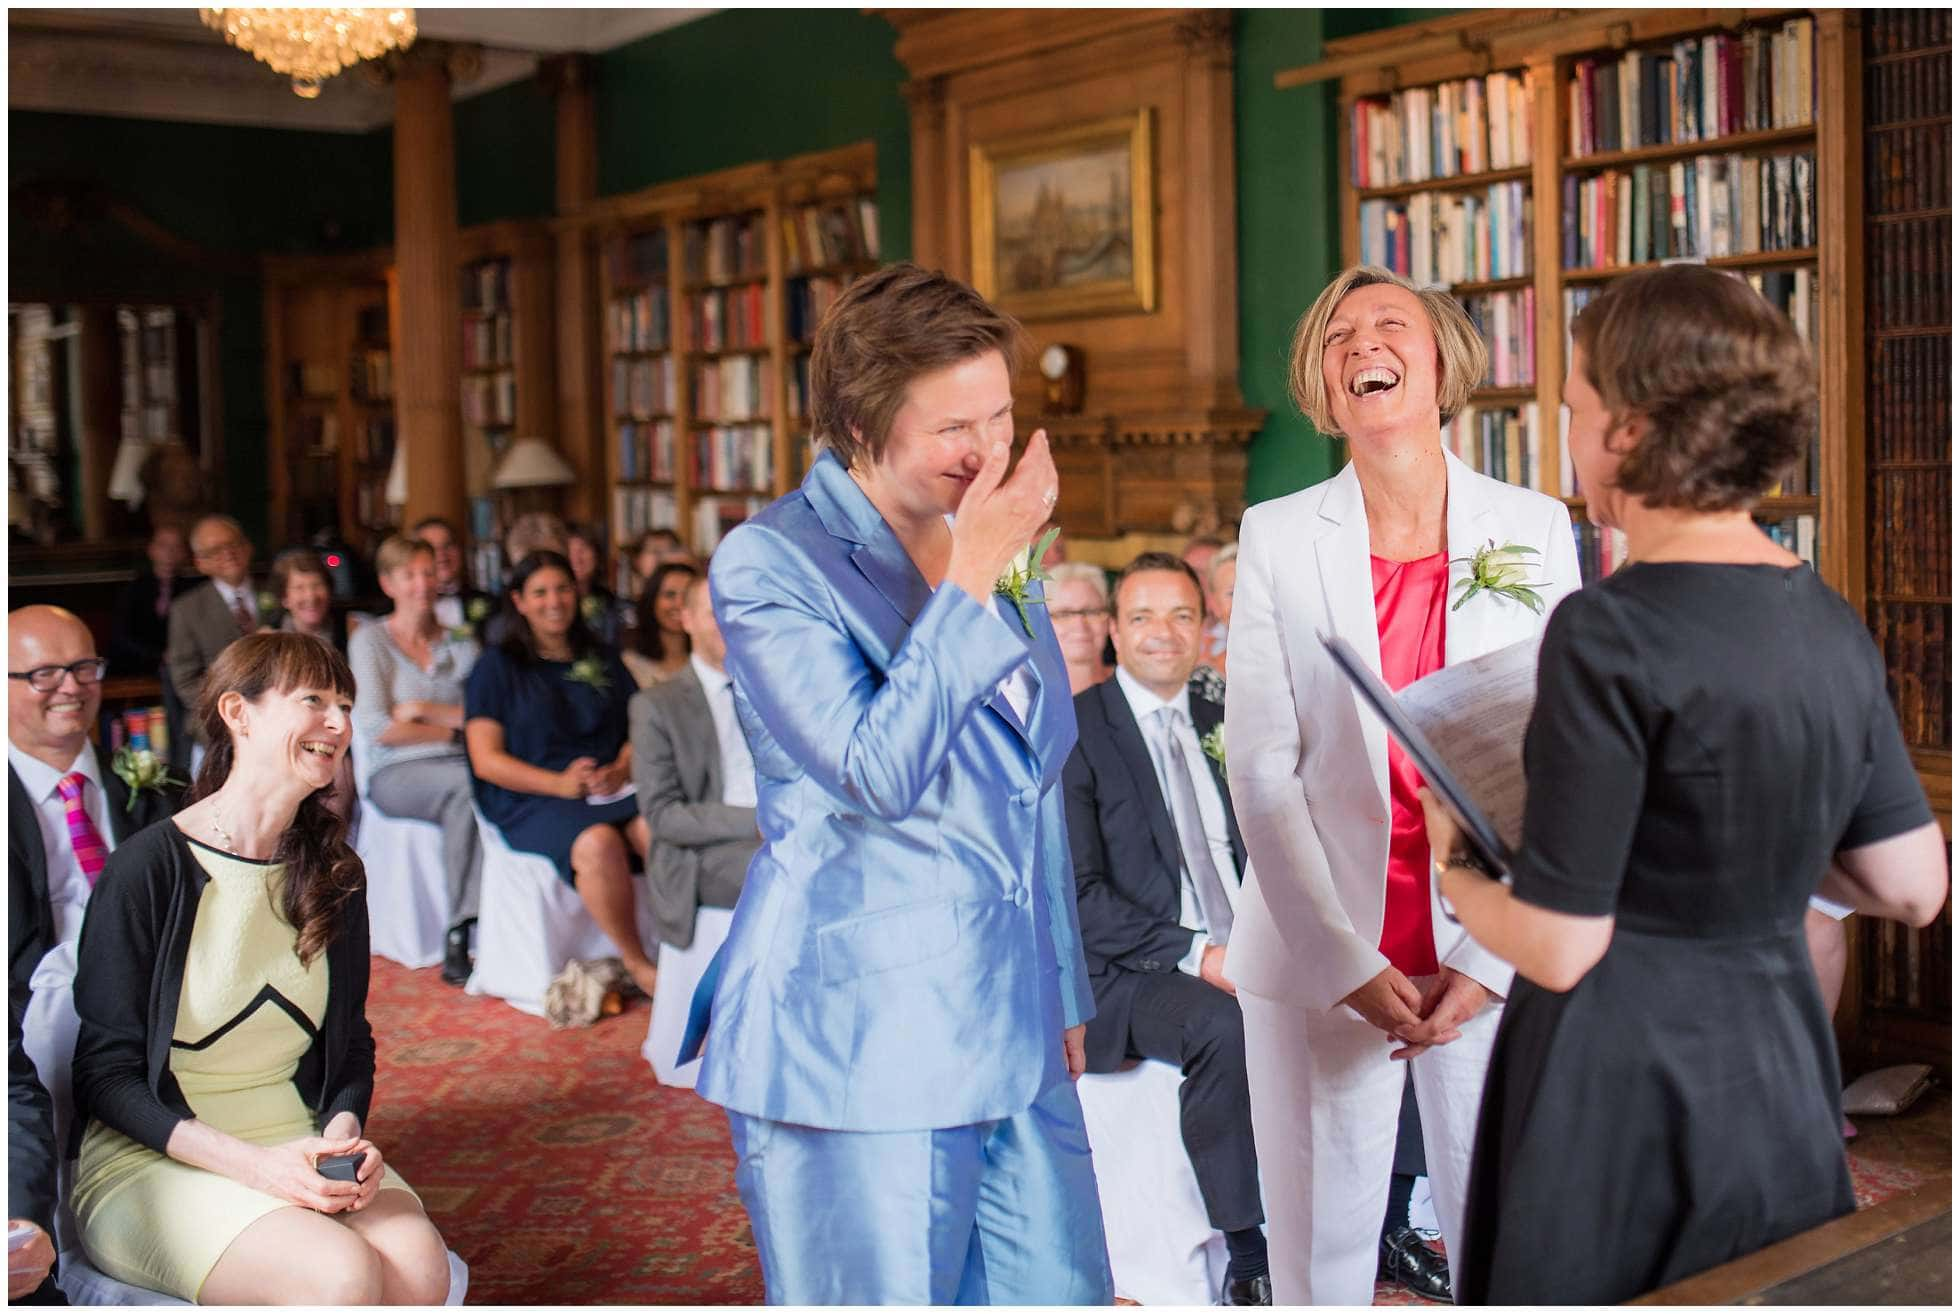 Laughter during the ceremony